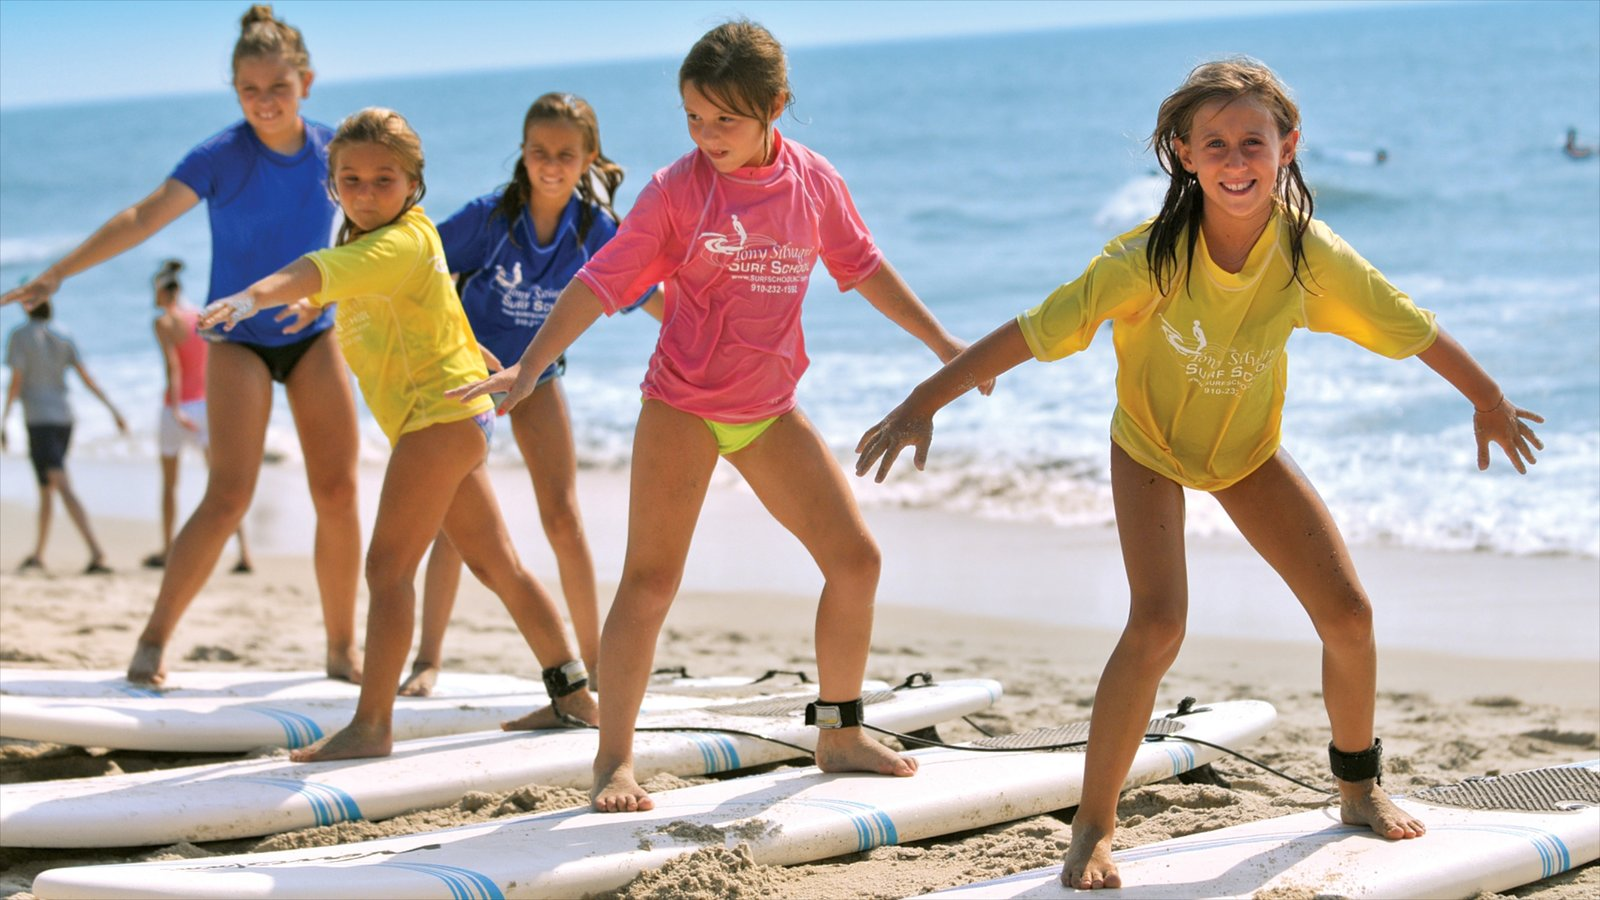 Carolina Beach which includes a sandy beach and surfing as well as children